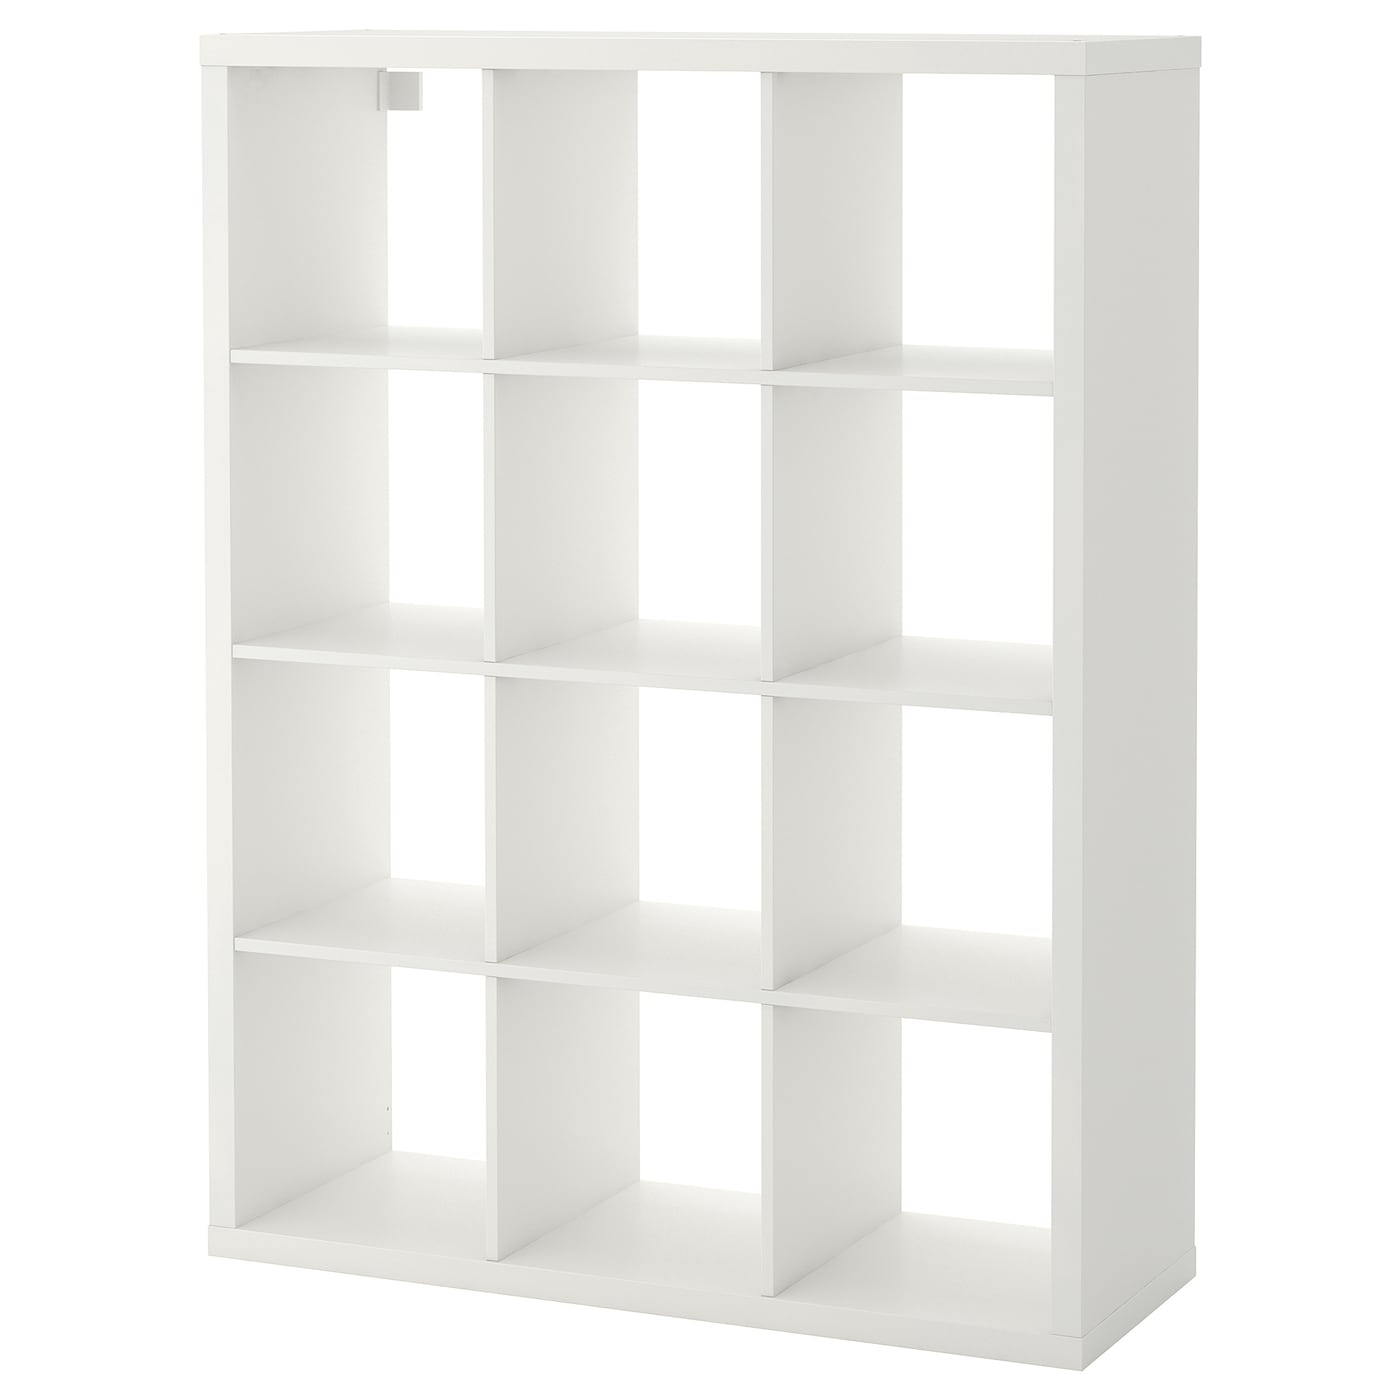 Shop For Furniture Lighting Home Accessories More Ikea